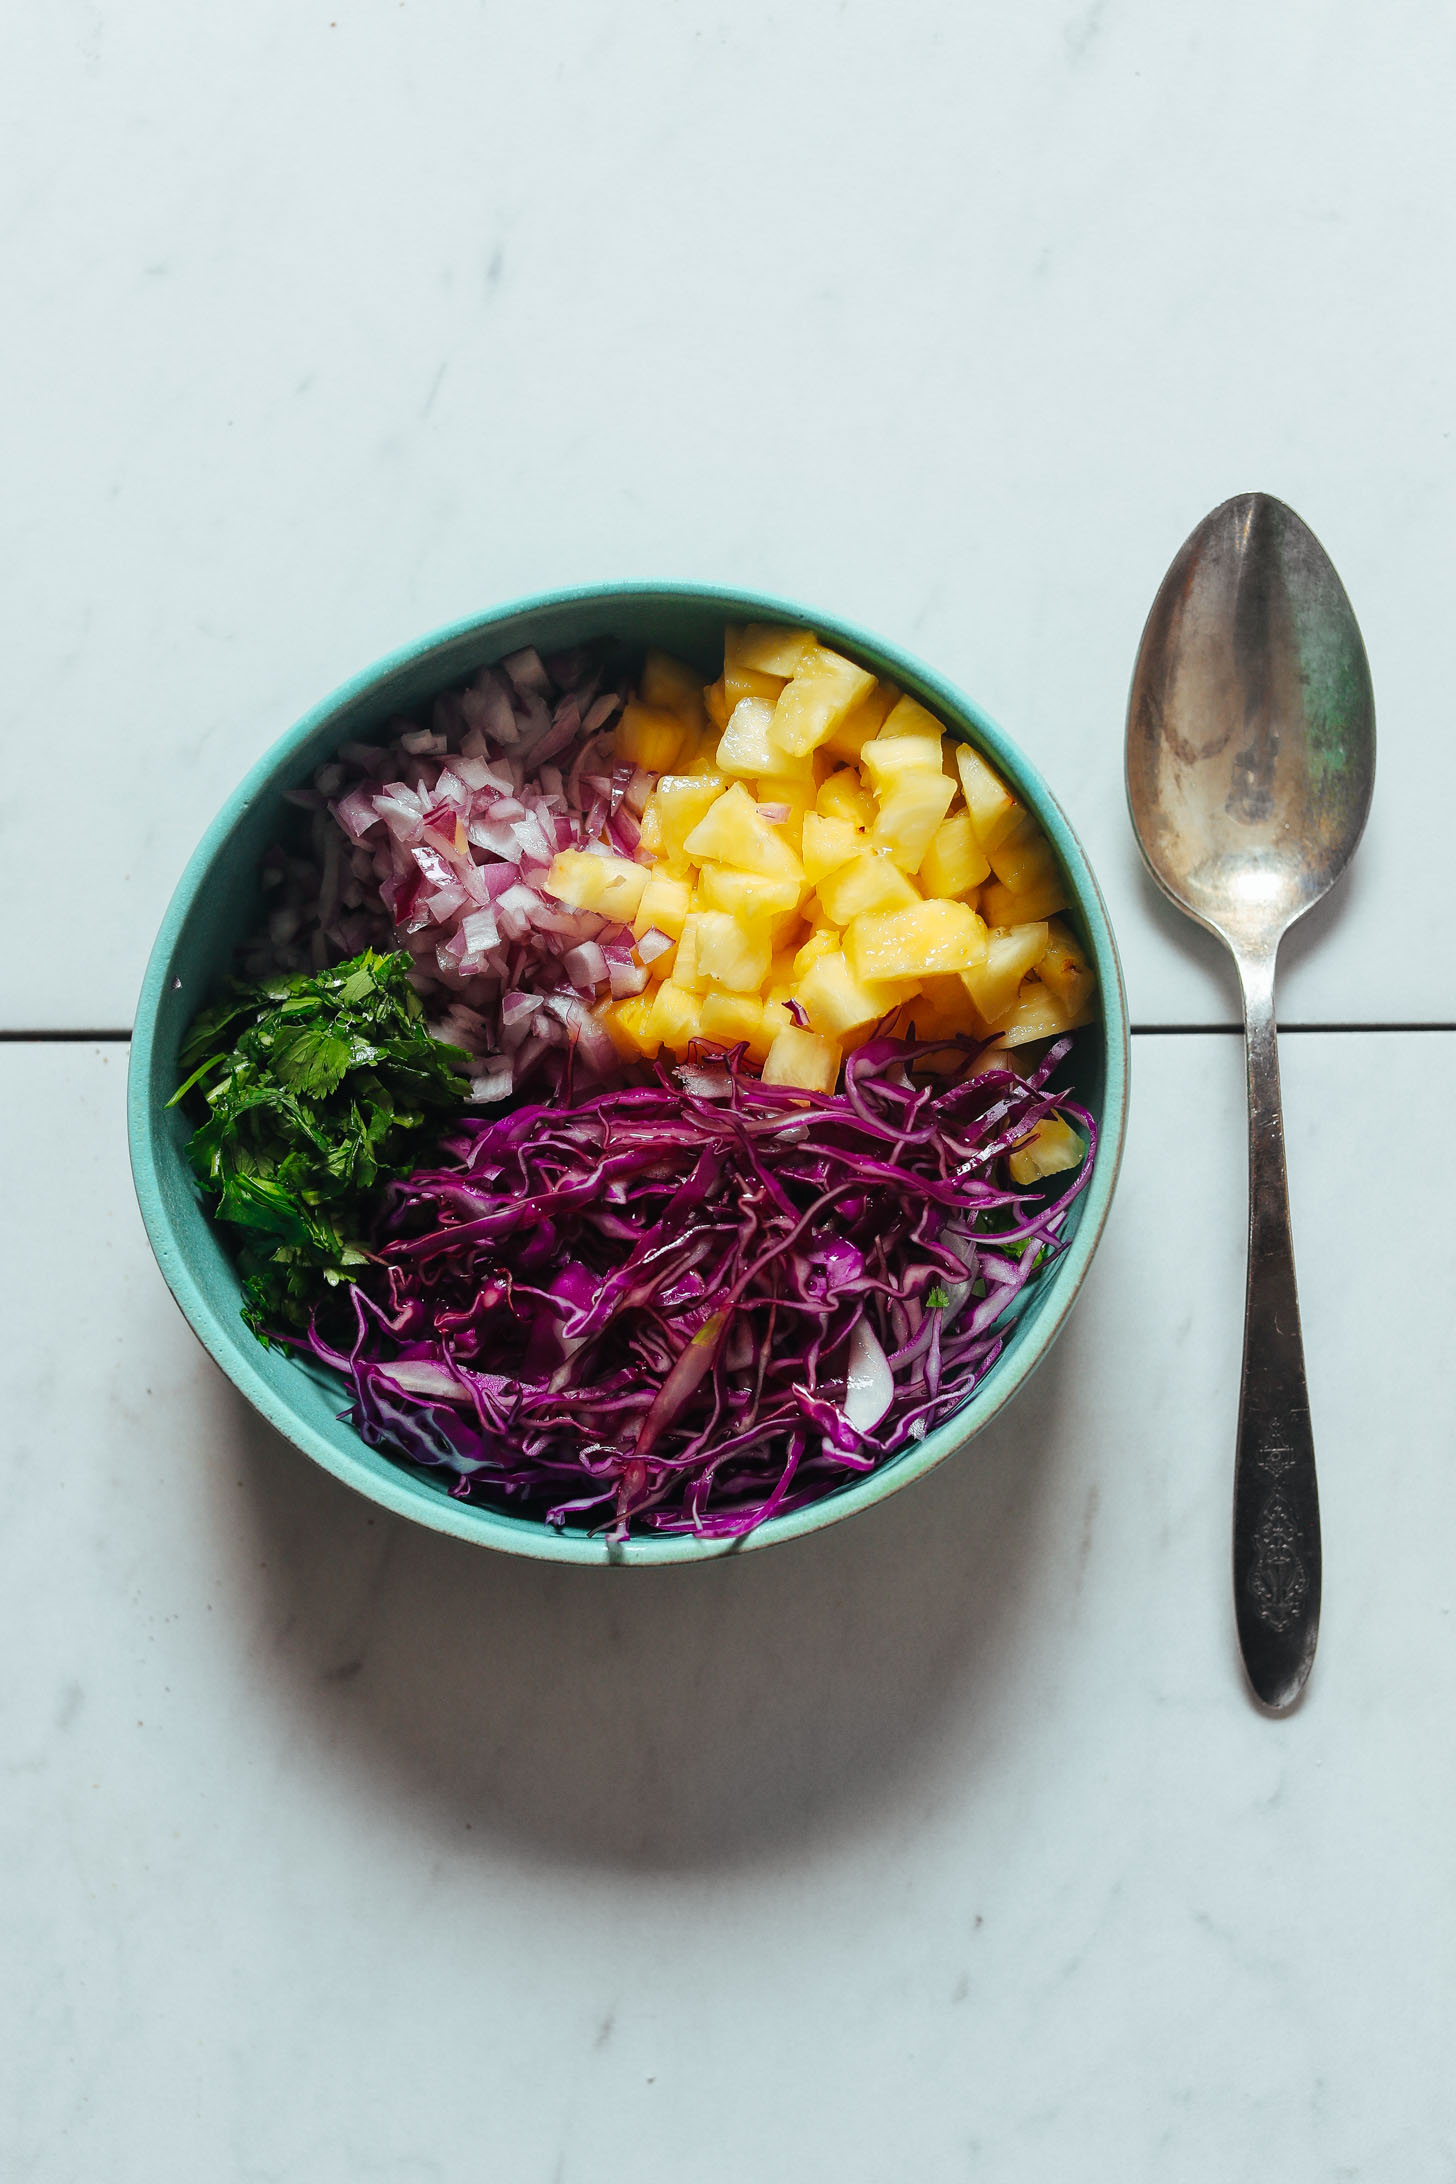 Bowl of diced pineapple, red onion, red cabbage, and cilantro ready to be stirred together for a Pineapple Cabbage Slaw